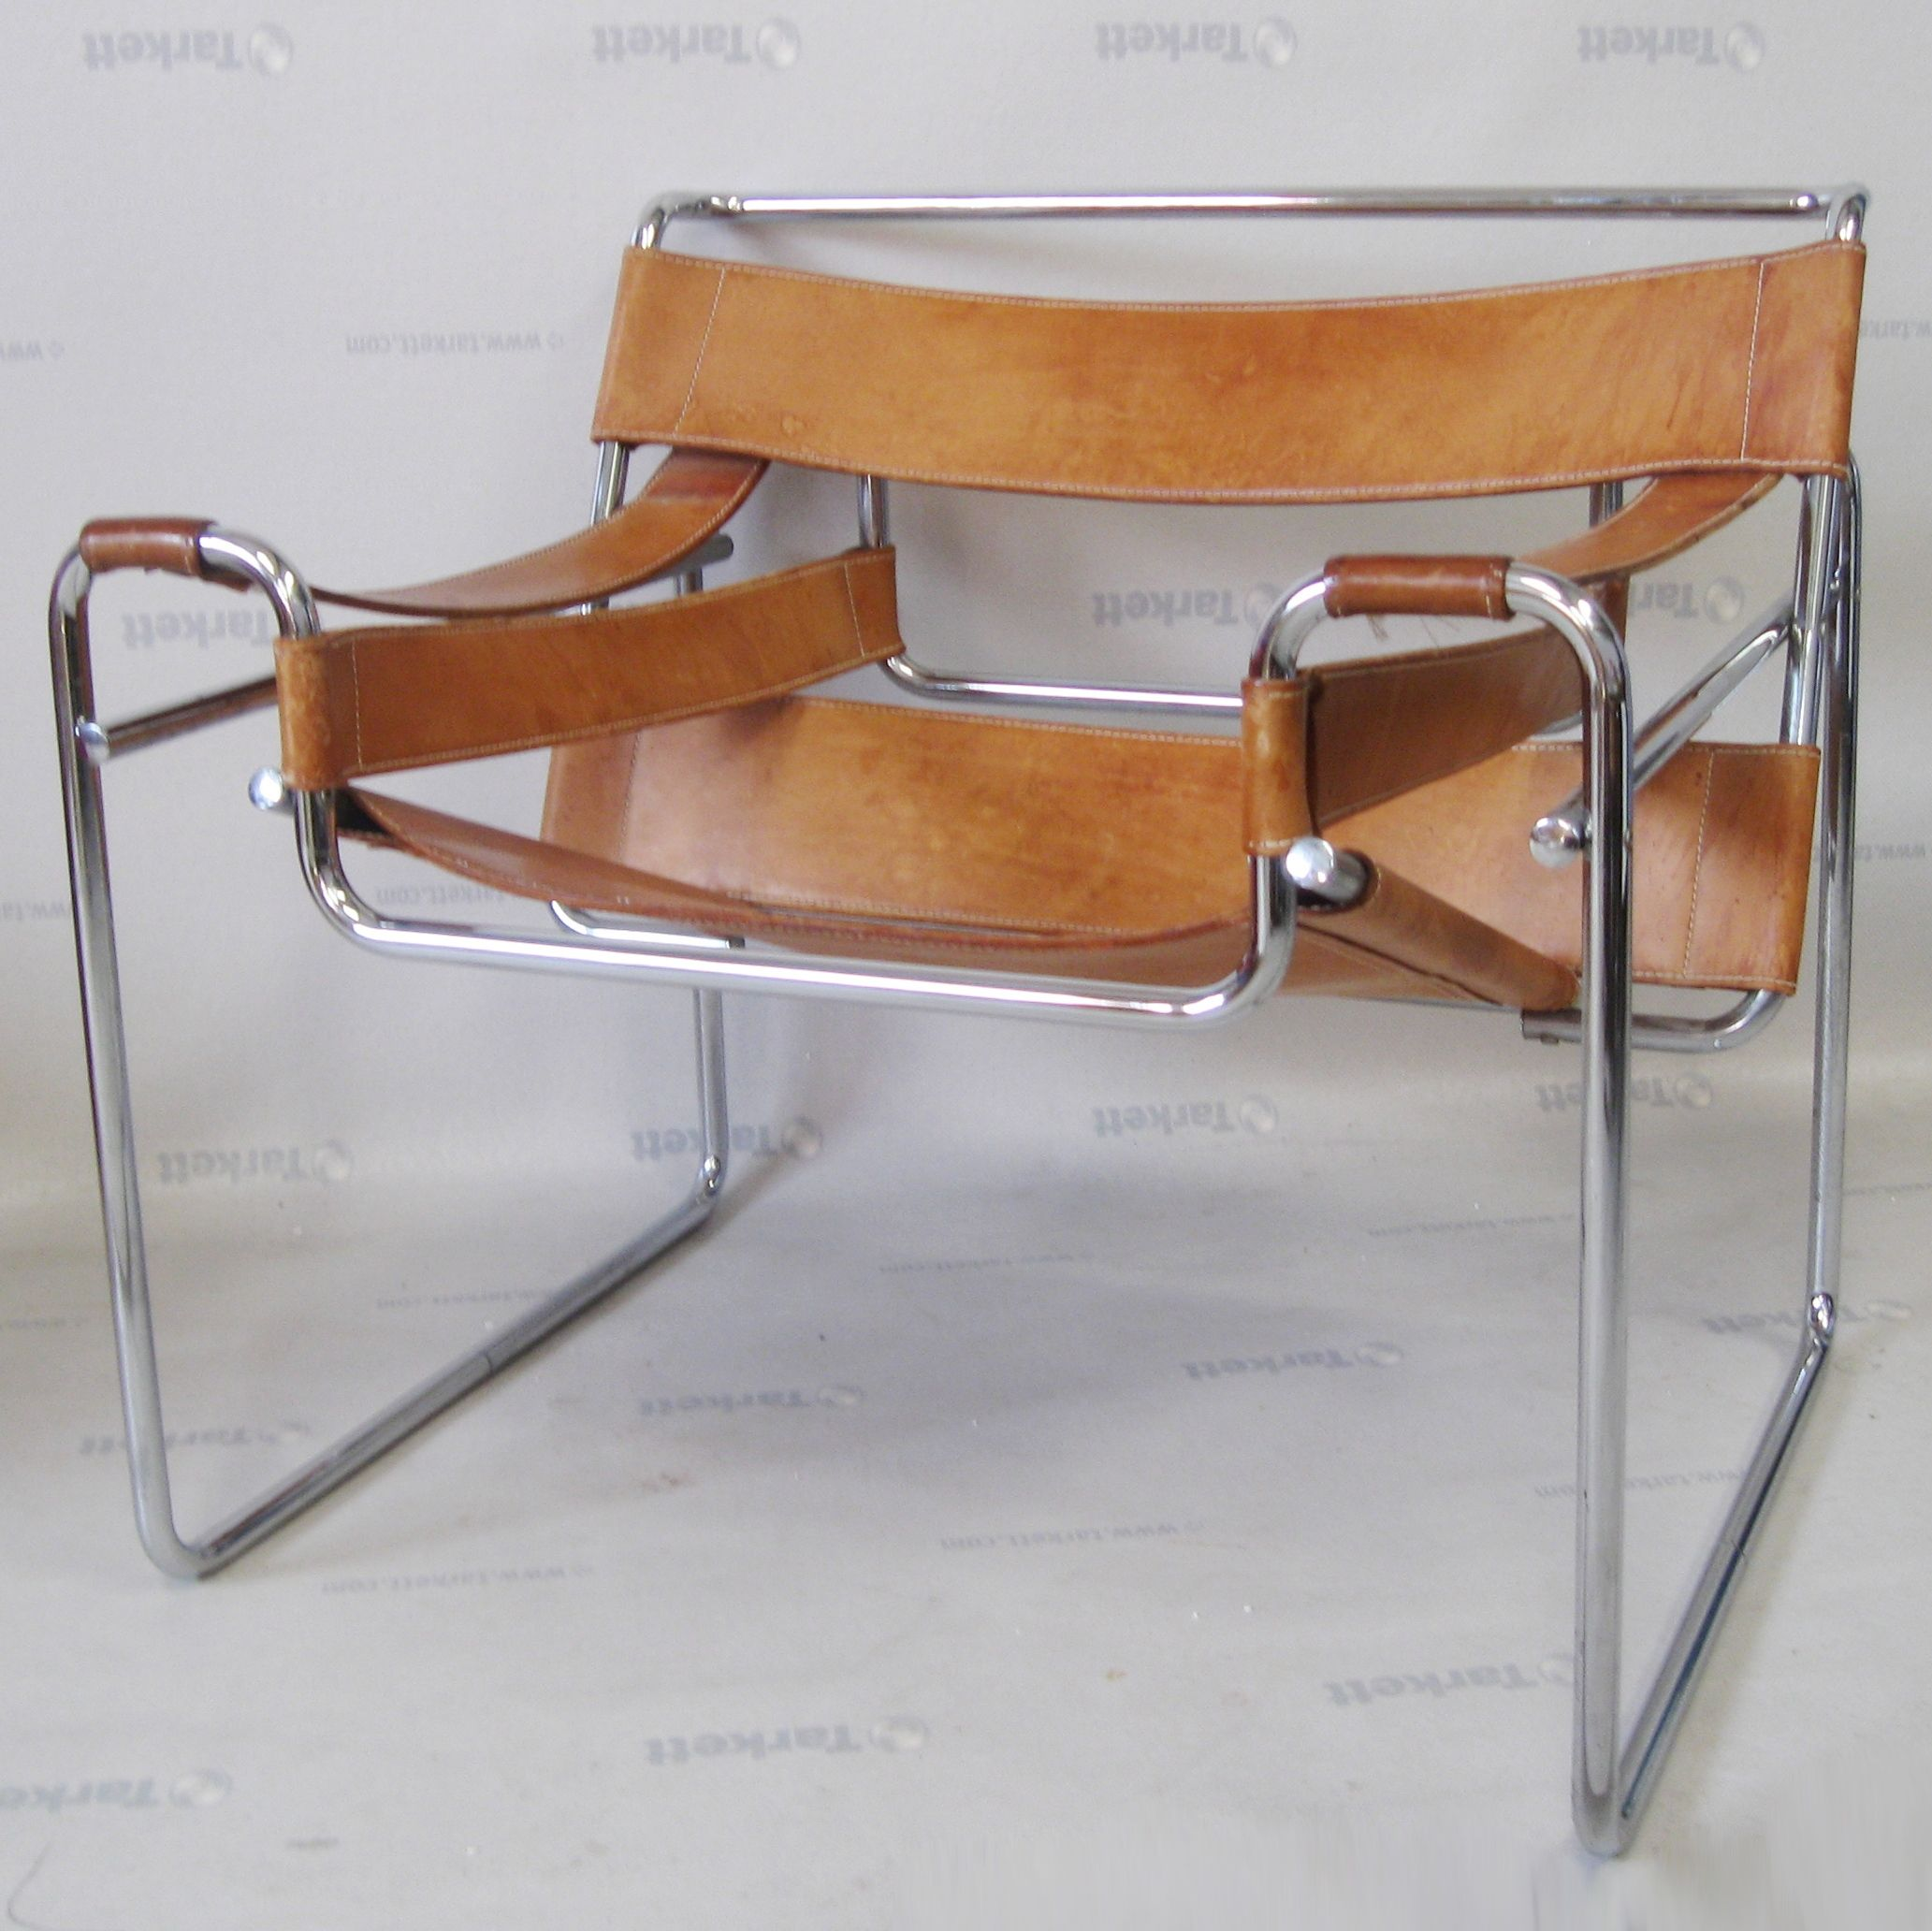 Charmant Marcel Brueru0027s Wassily Chair. I Have This, In Brown, It Broke :(